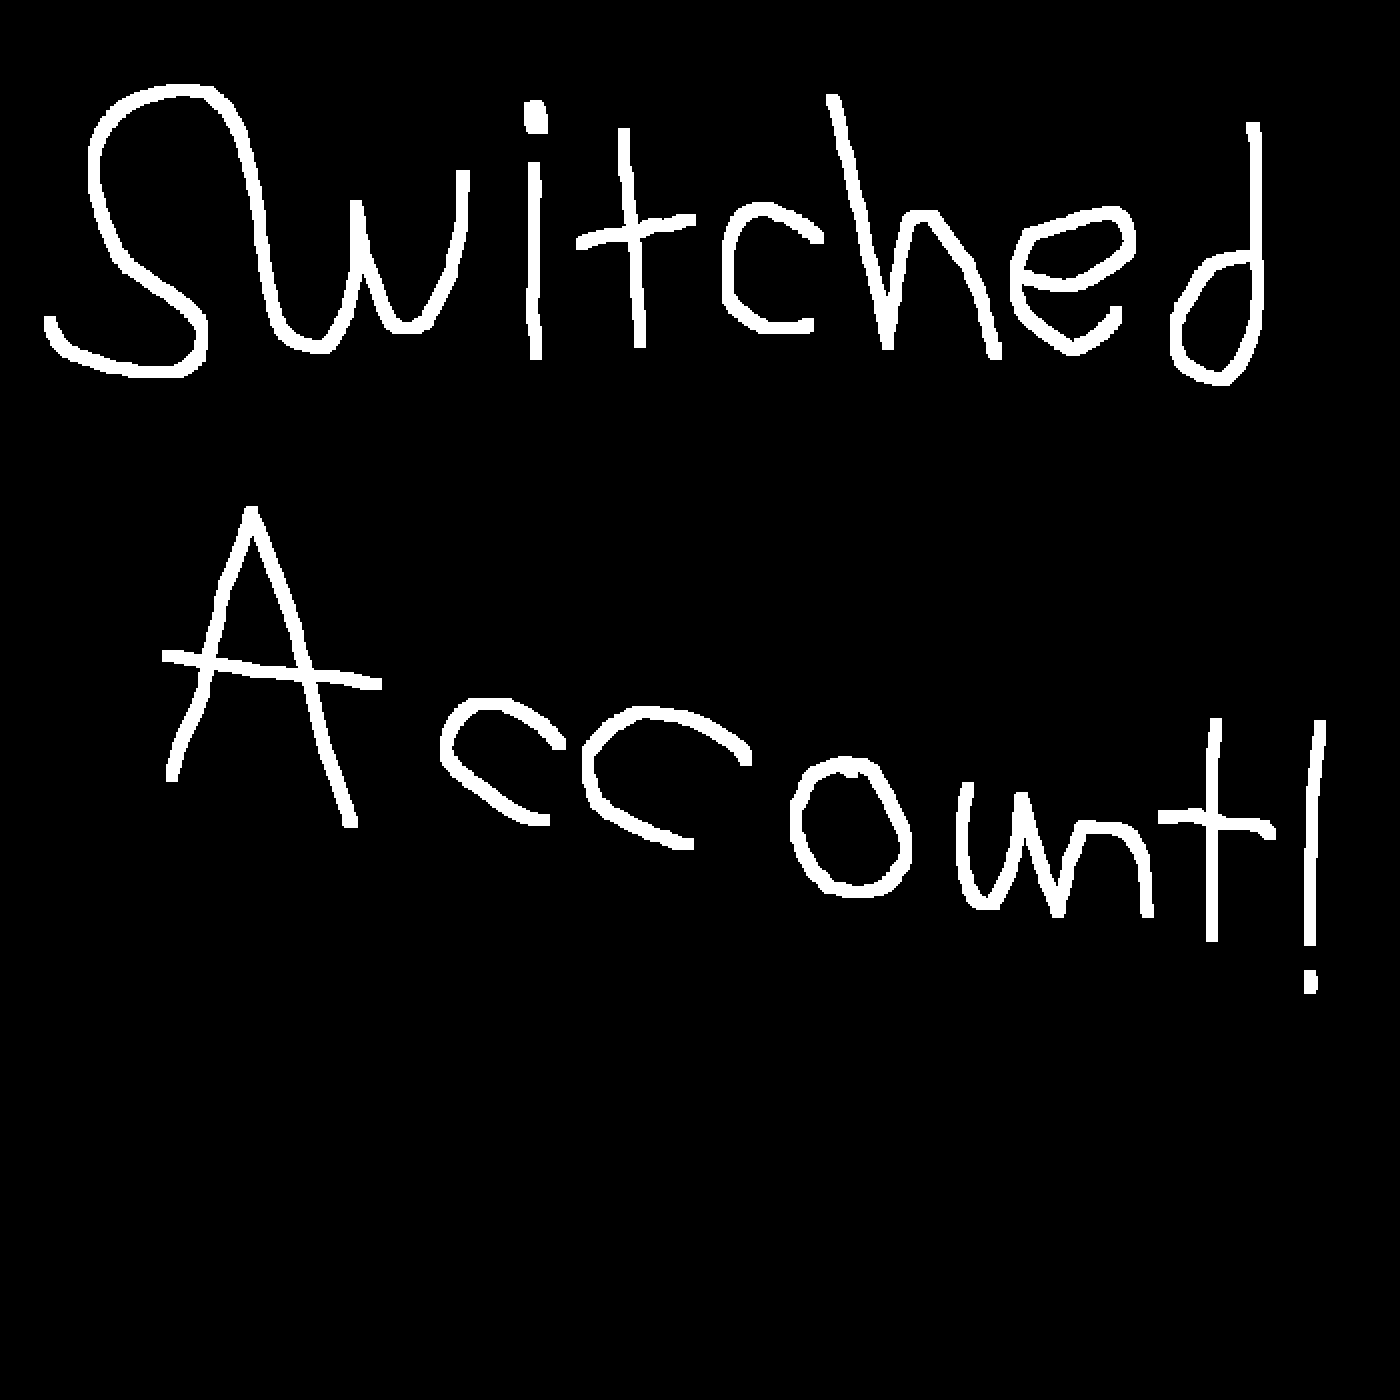 SWITCHED ACCOUNT! by ArticFoox